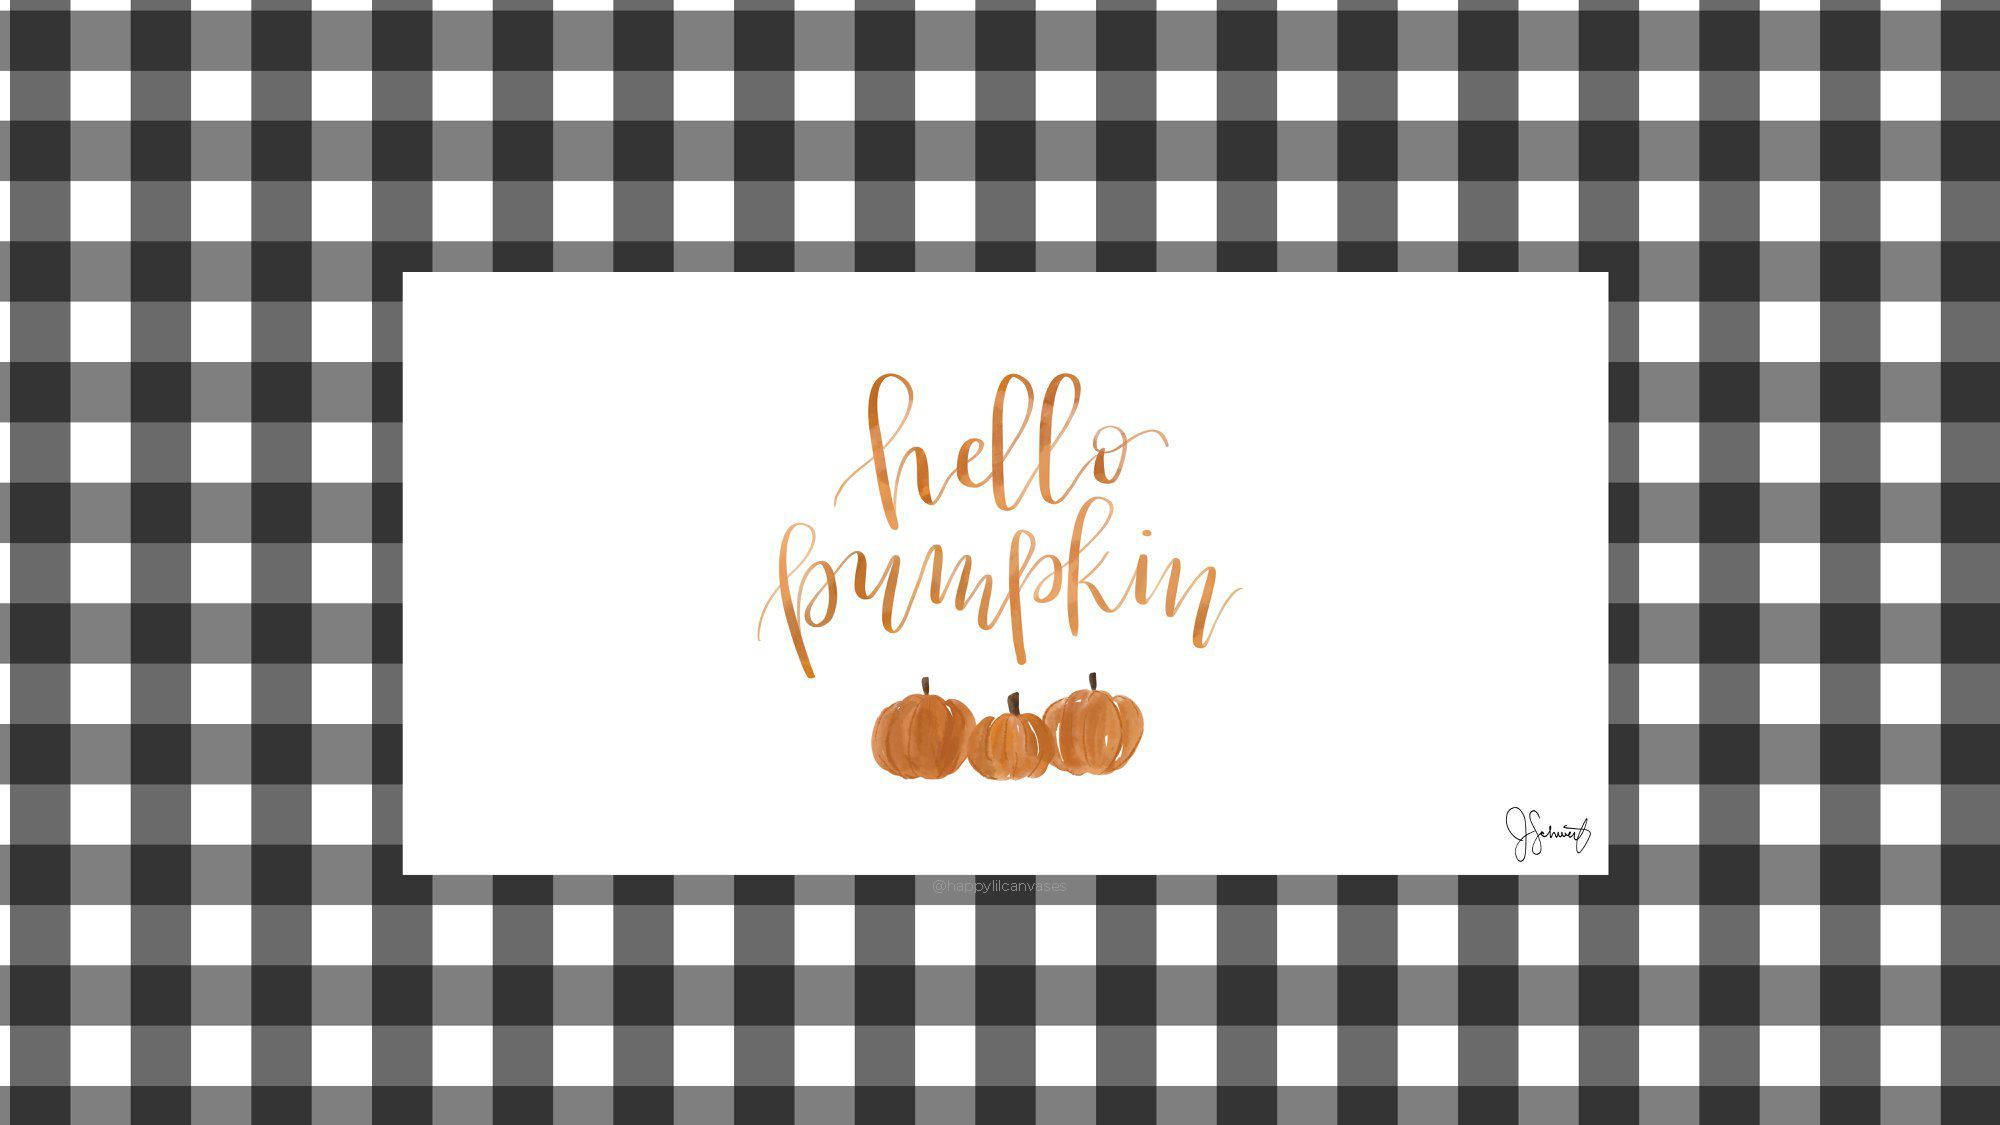 Cute Fall Desktop Background Desktop Wallpaper Pumpkin Calligraphy Autumn Computer Sc Desktop Wallpaper Fall Halloween Desktop Wallpaper Cute Desktop Wallpaper